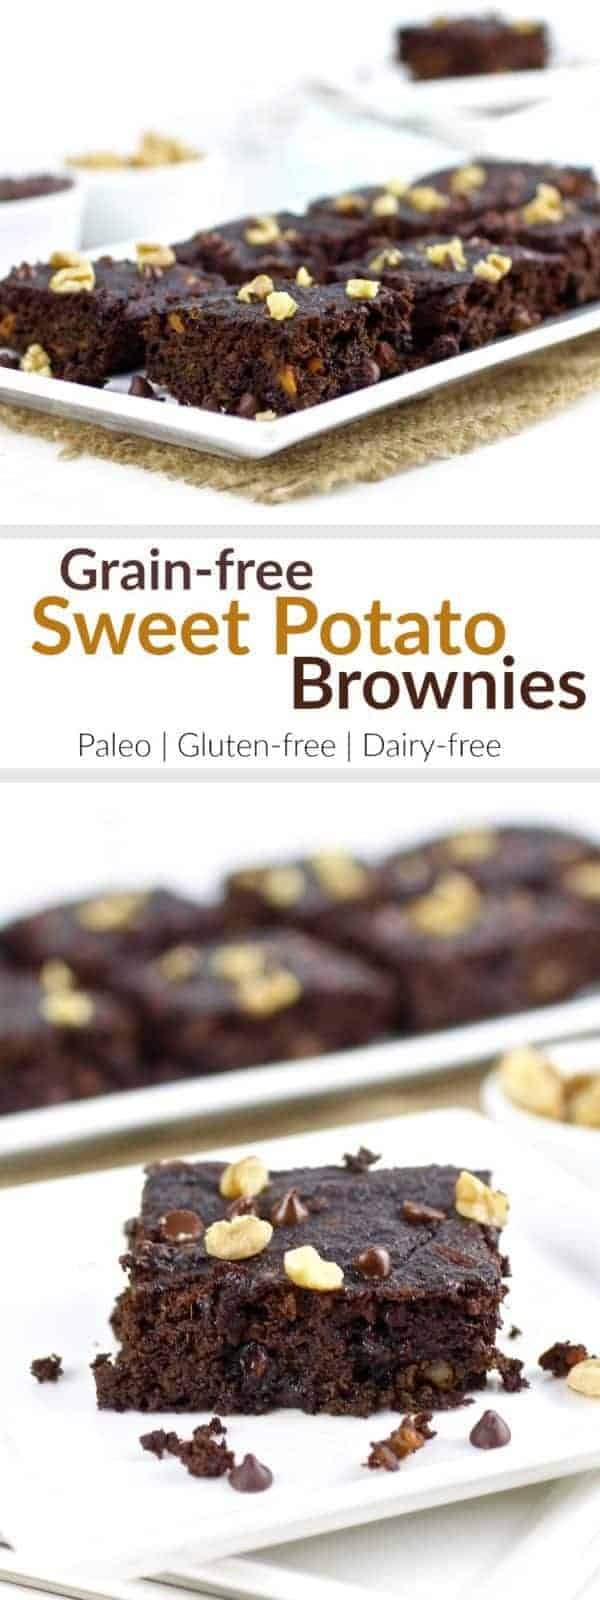 Grain-free Sweet Potato Brownies are paleo-friendly, nutritious and just what you need when you want a little something sweet | Paleo | Gluten-free | Grain-free | Dairy-free | http://therealfoodrds.com